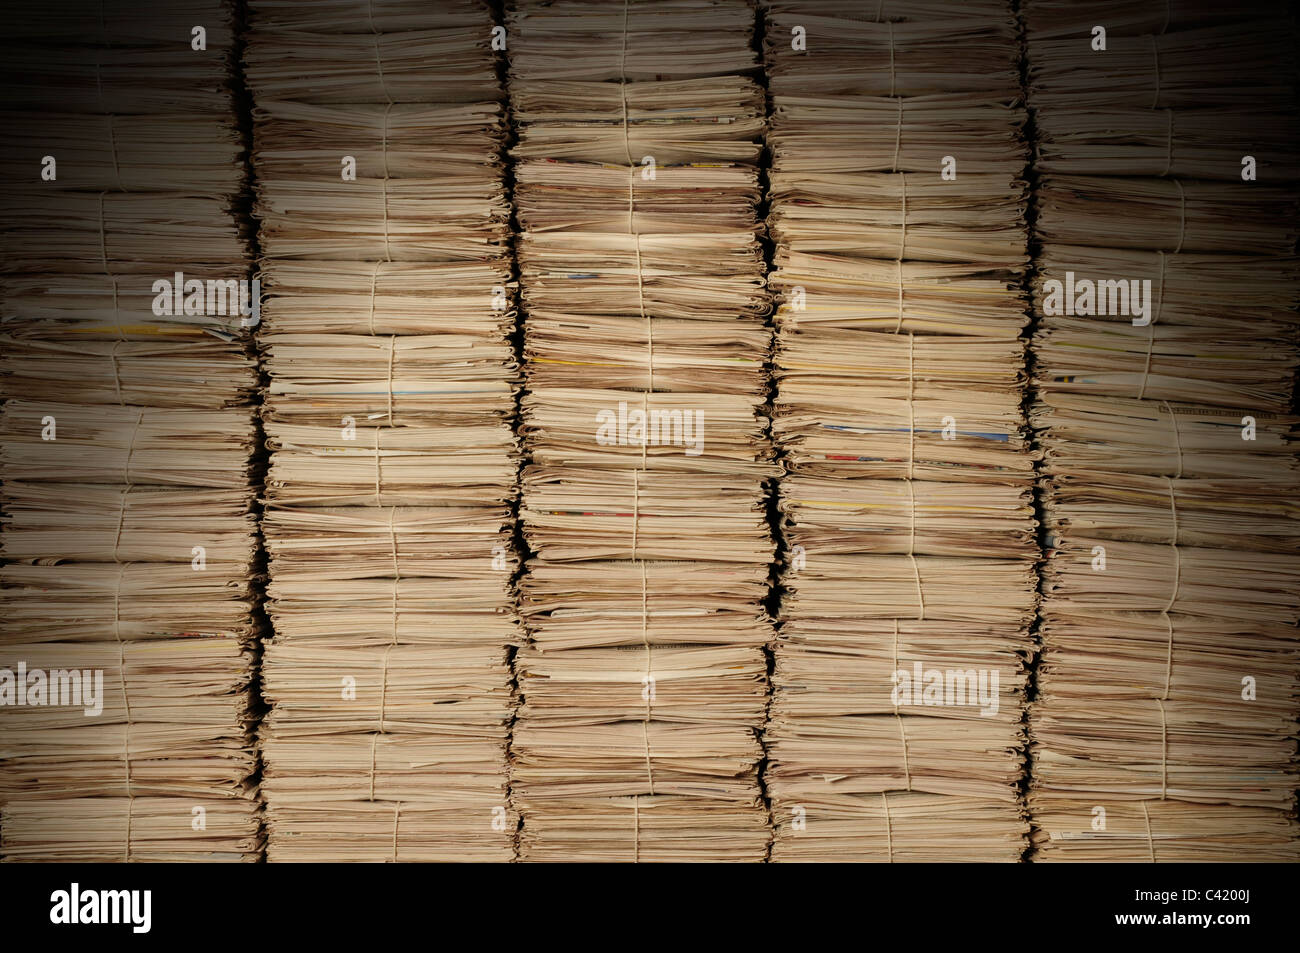 Five uniform piles of newspapers to be recycled lit from above - Stock Image